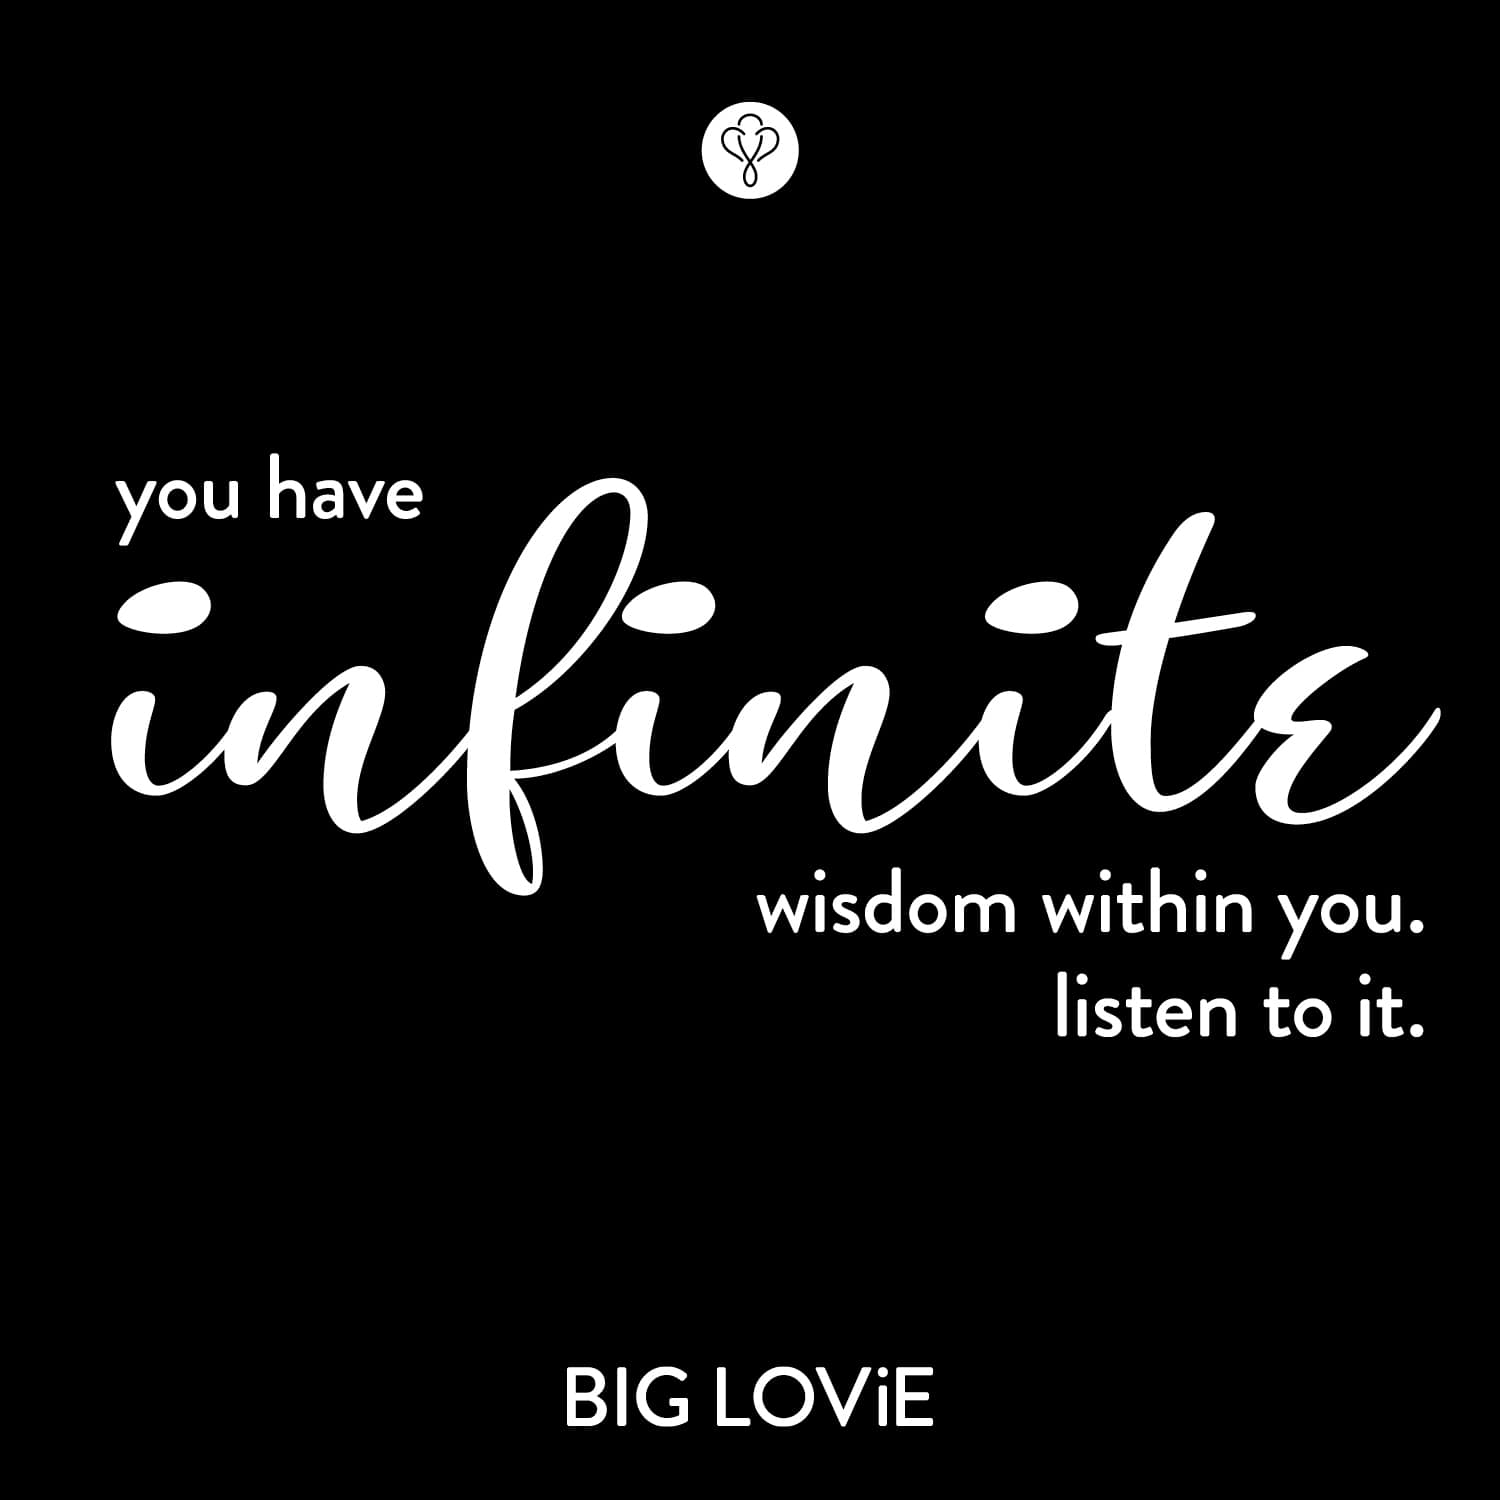 You have infinite wisdom within you - BIG LOViE